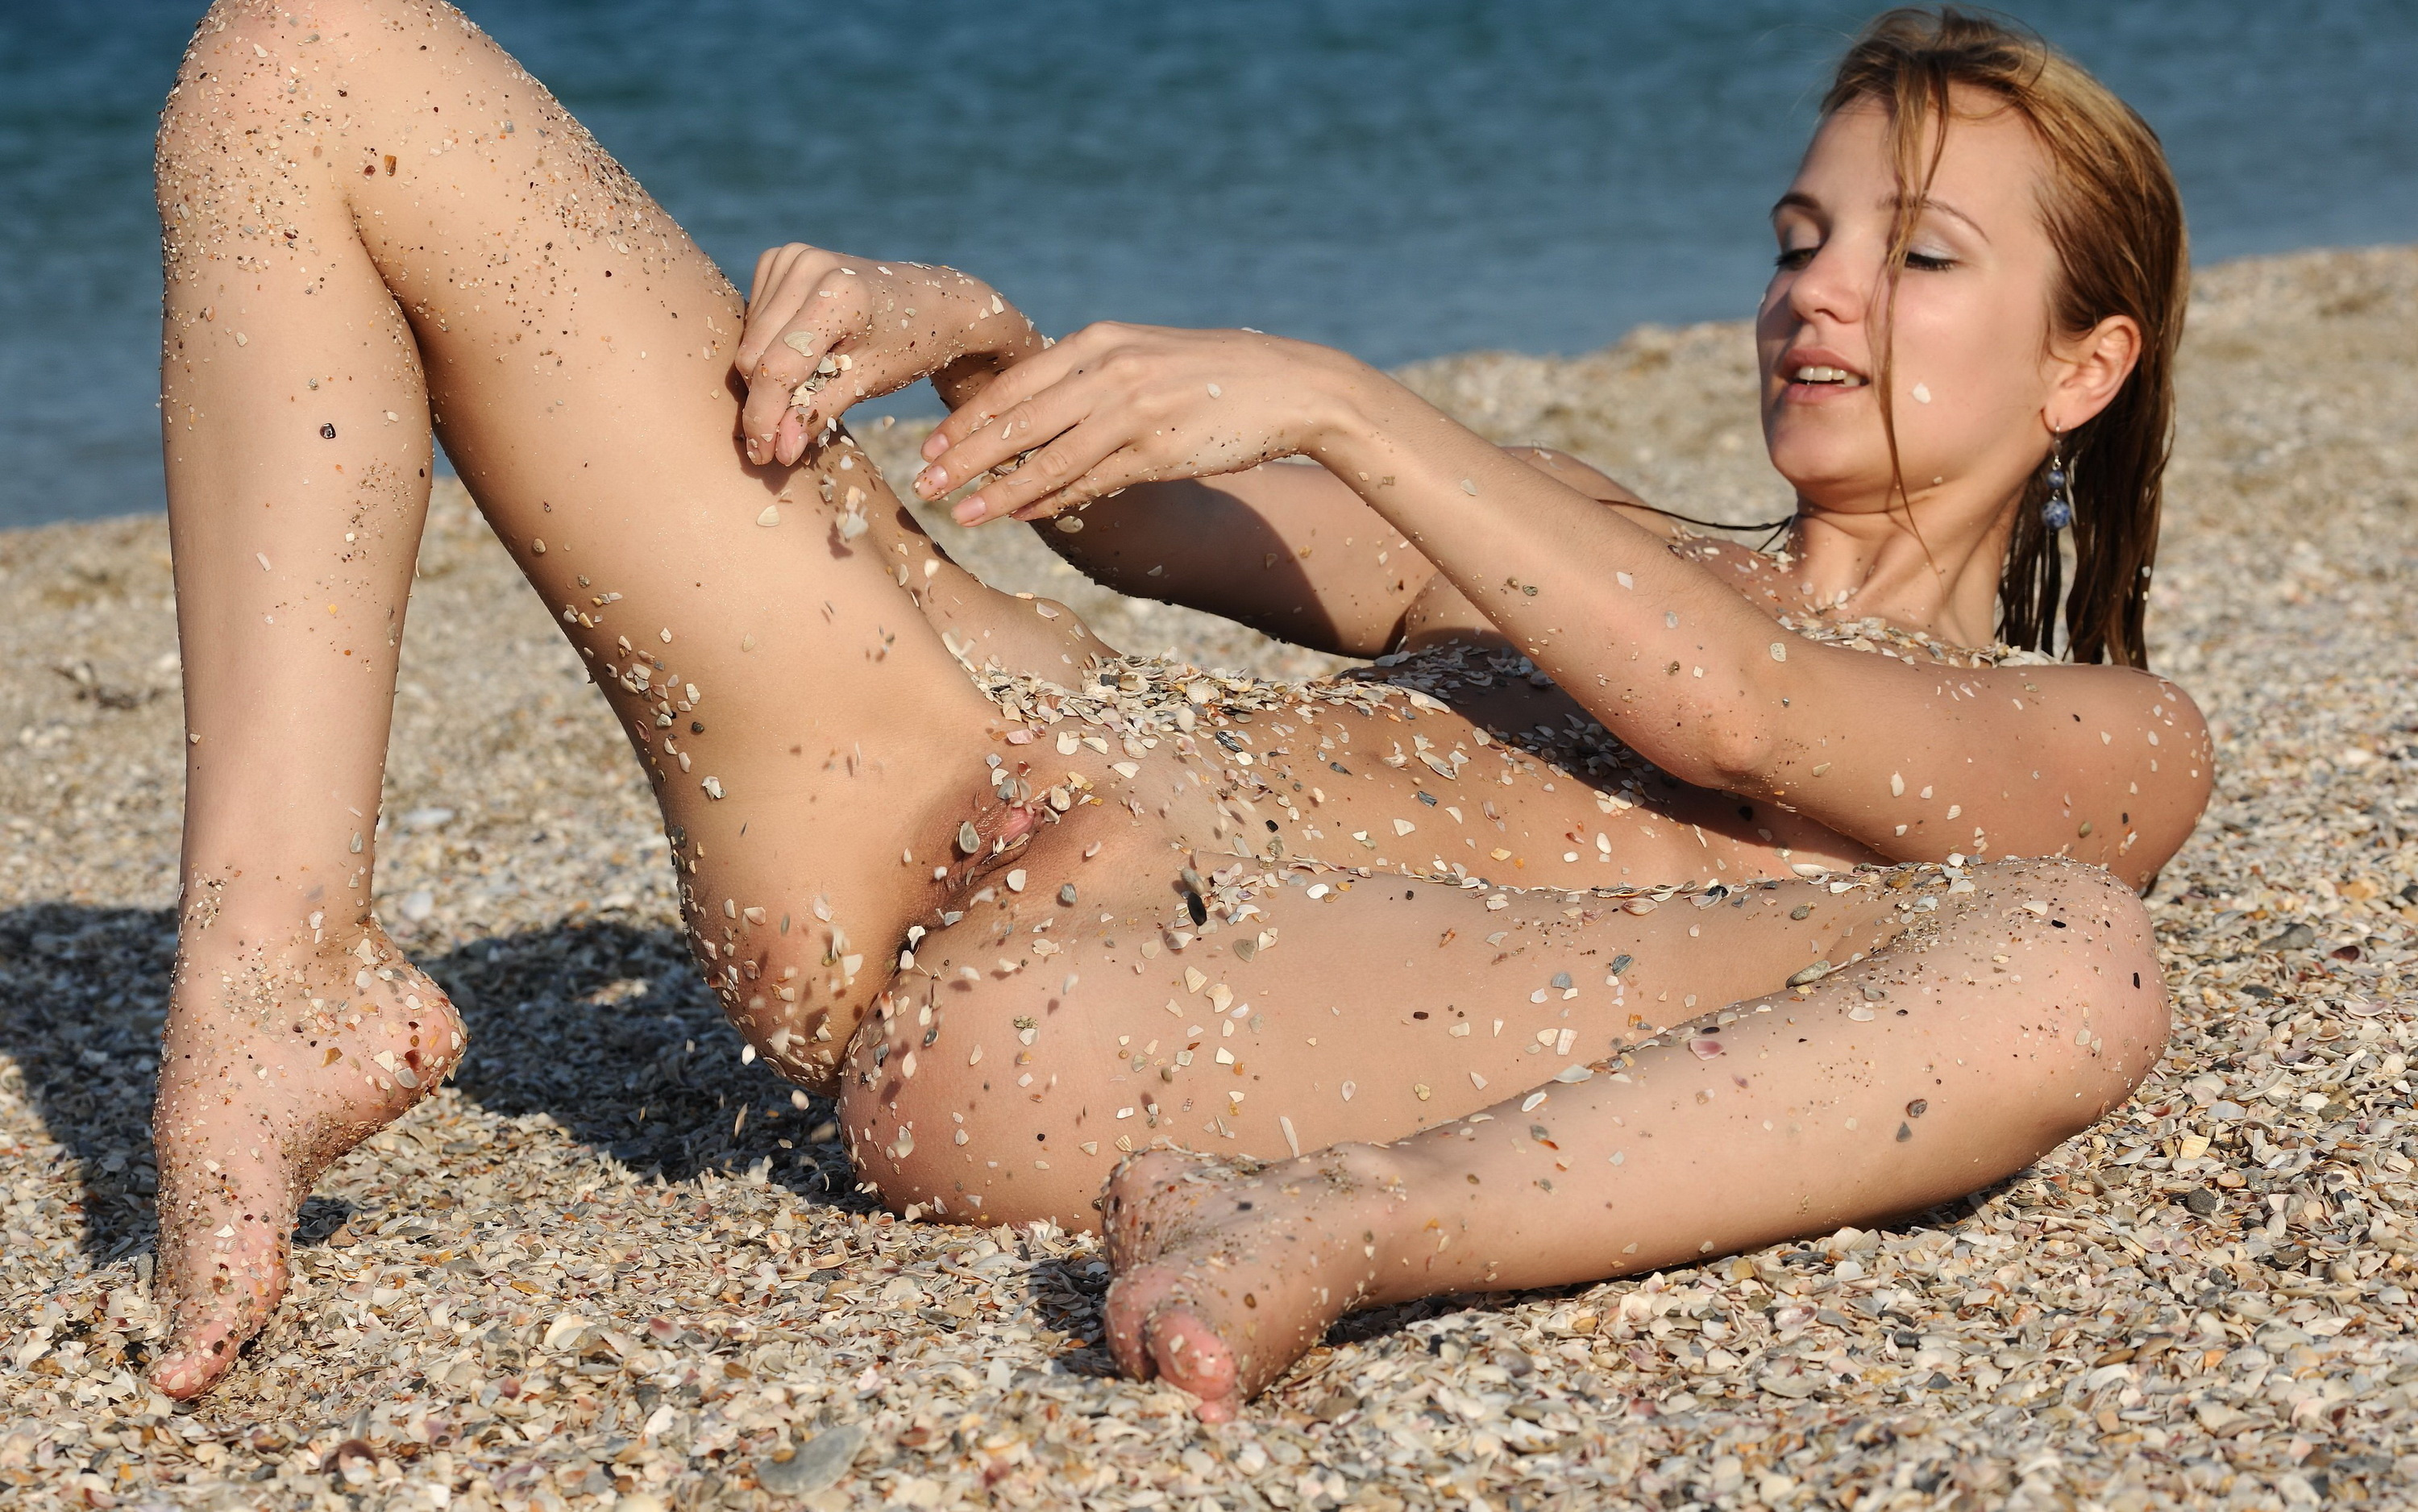 Sorry, girls naked 2 beachgirls movies for the valuable